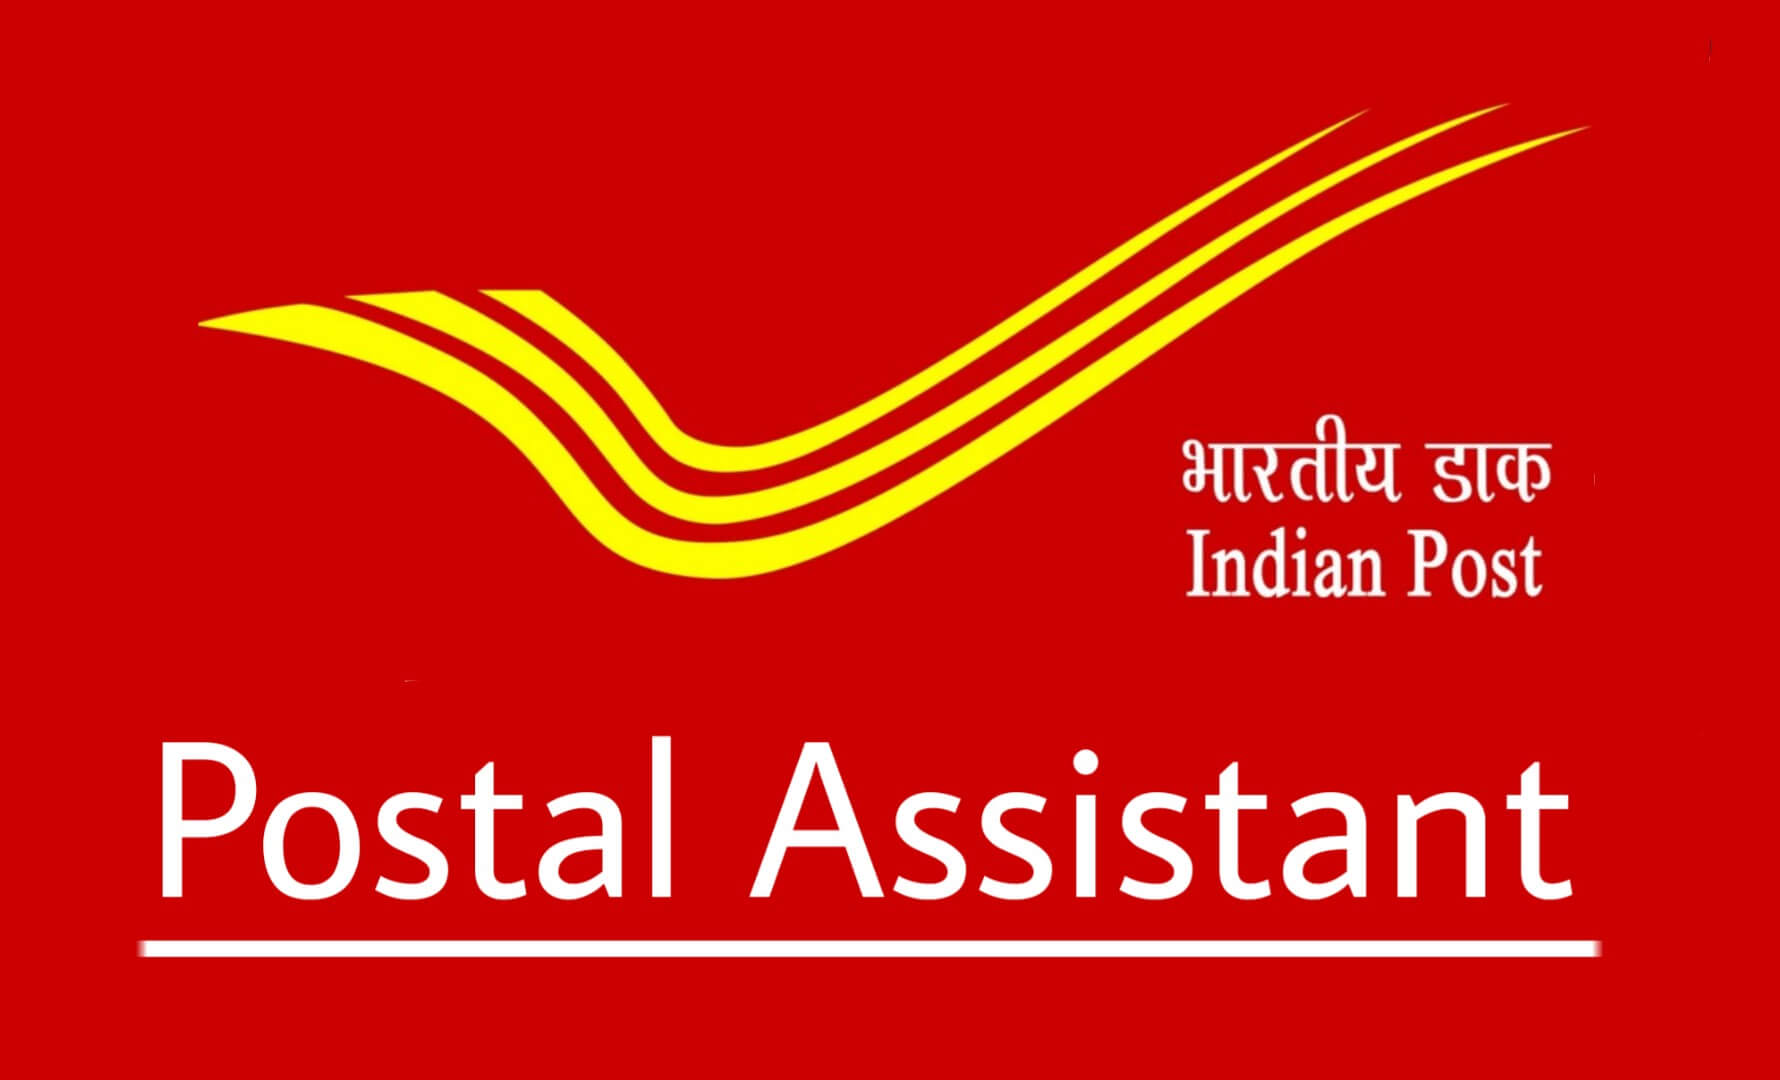 India Post Postal Assistant